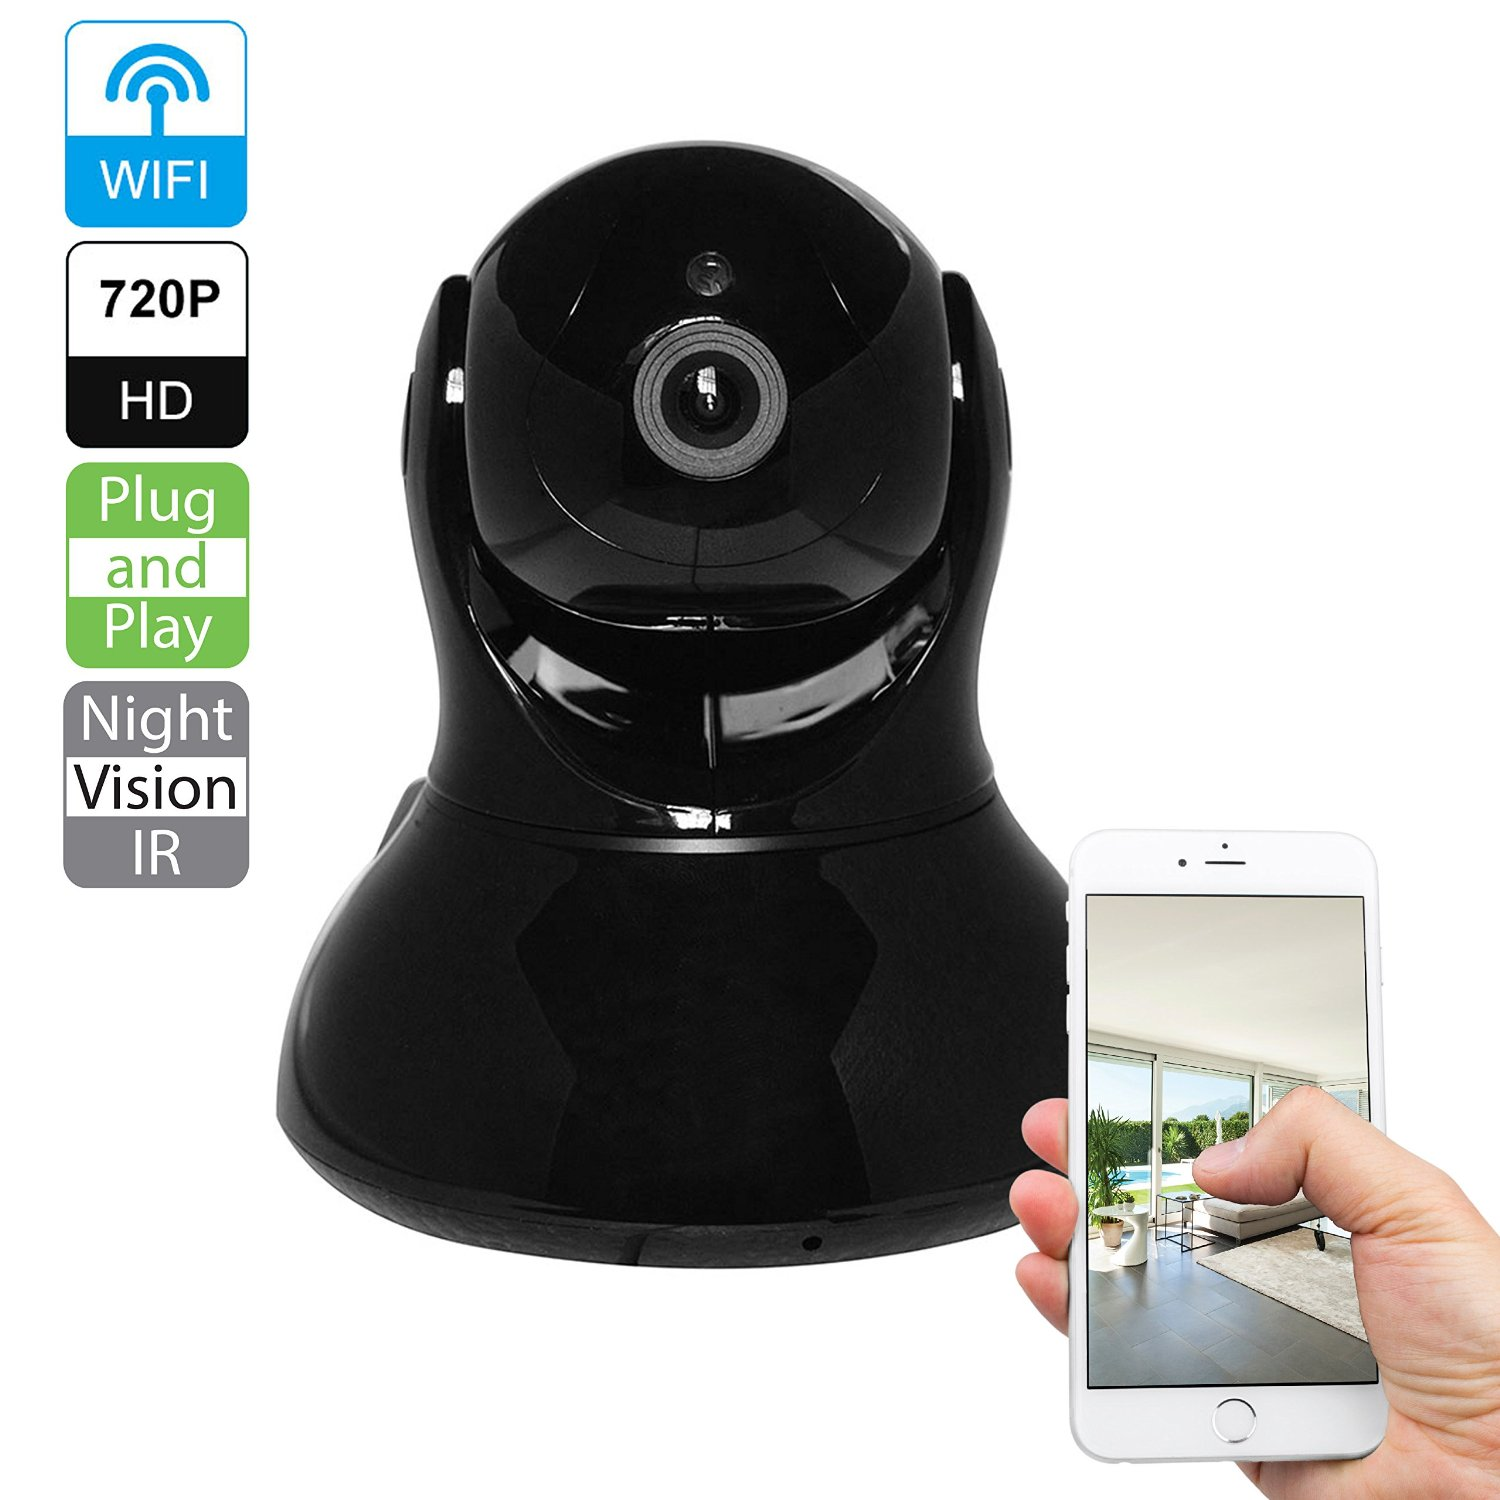 R-Tech Wireless Security Systems